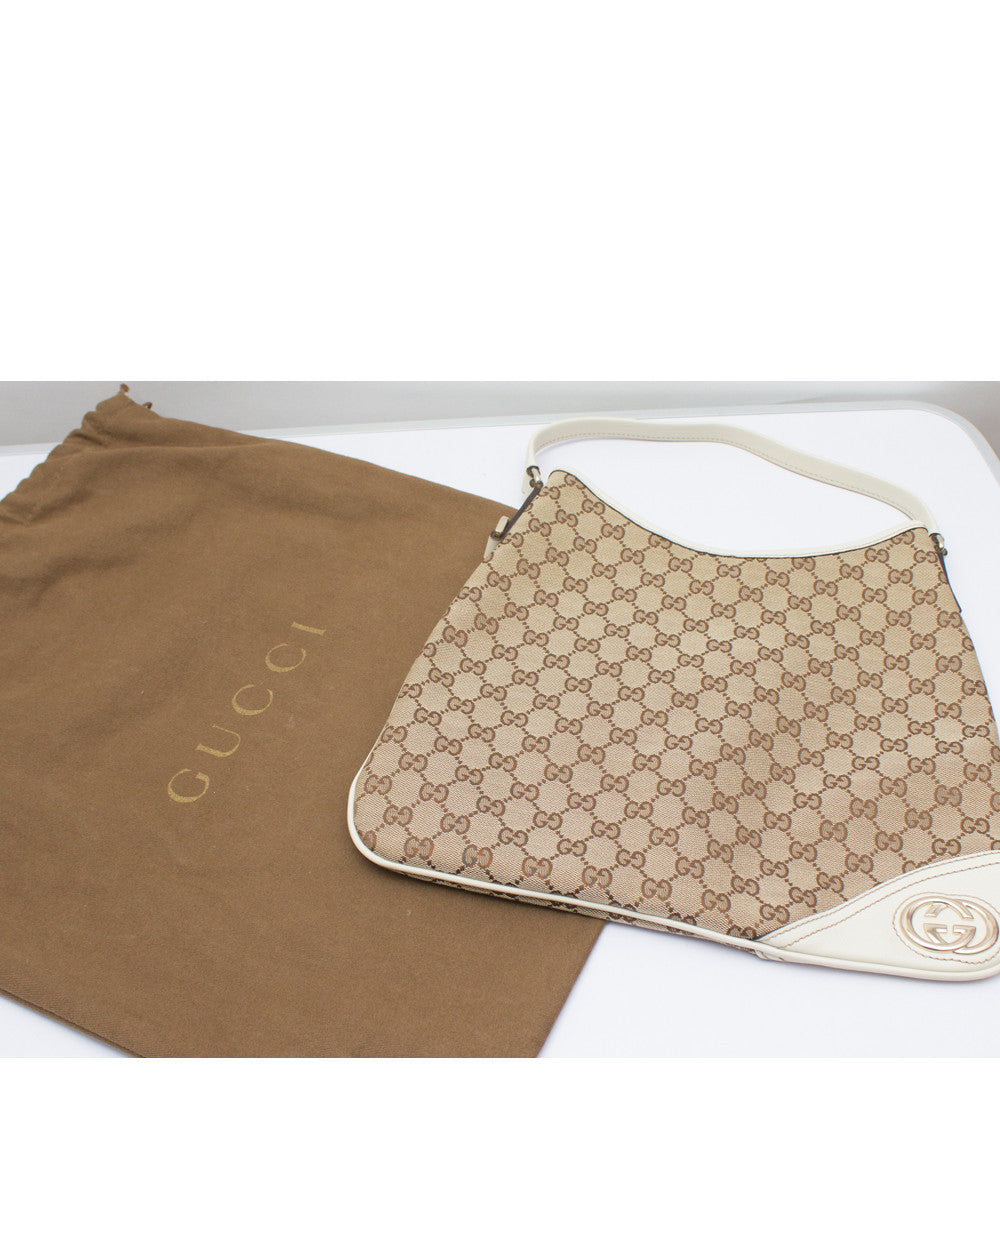 Monogram Hobo Bag